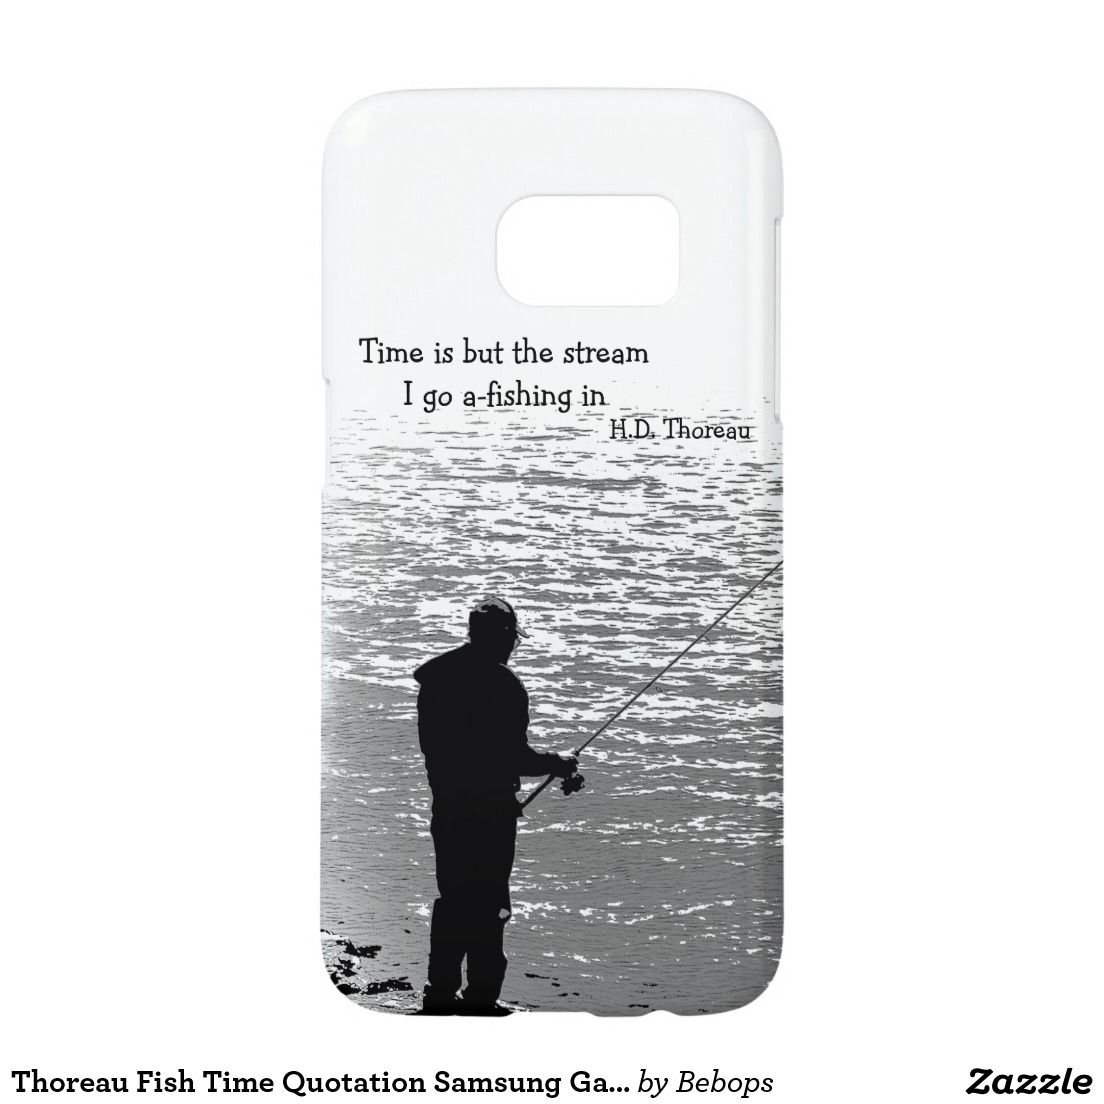 Thoreau Fish Time Quotation Samsung Galaxy S7 Case